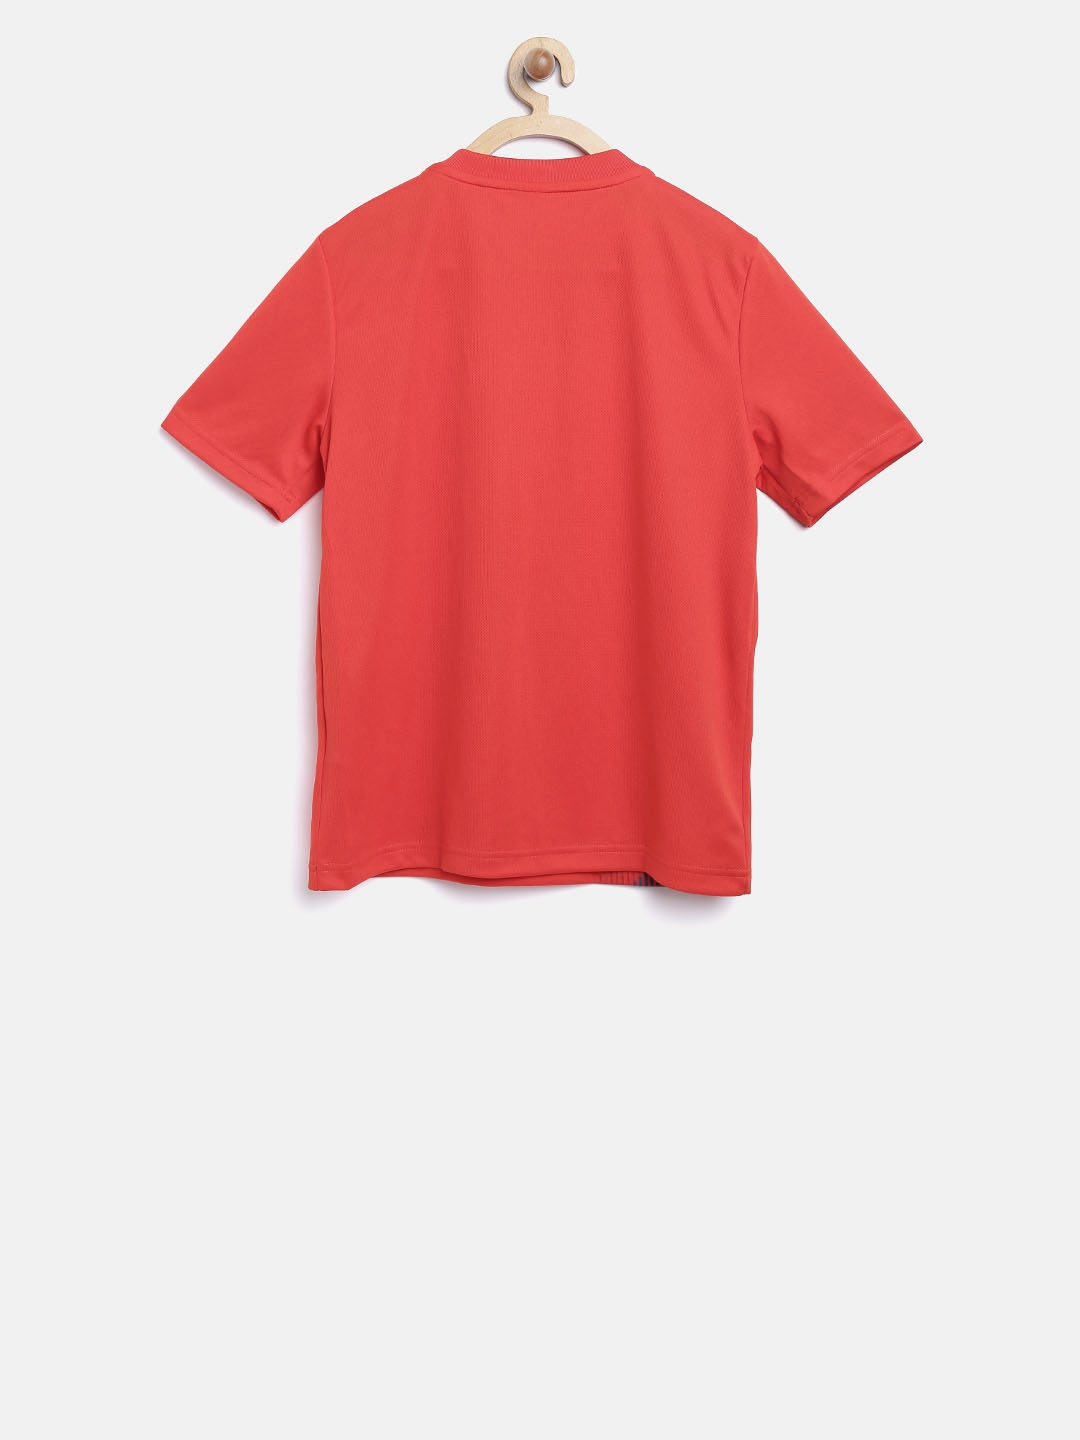 Buy Adidas Boys Red Football Spain Home Jersey Printed Round Neck T ... 4093dca00